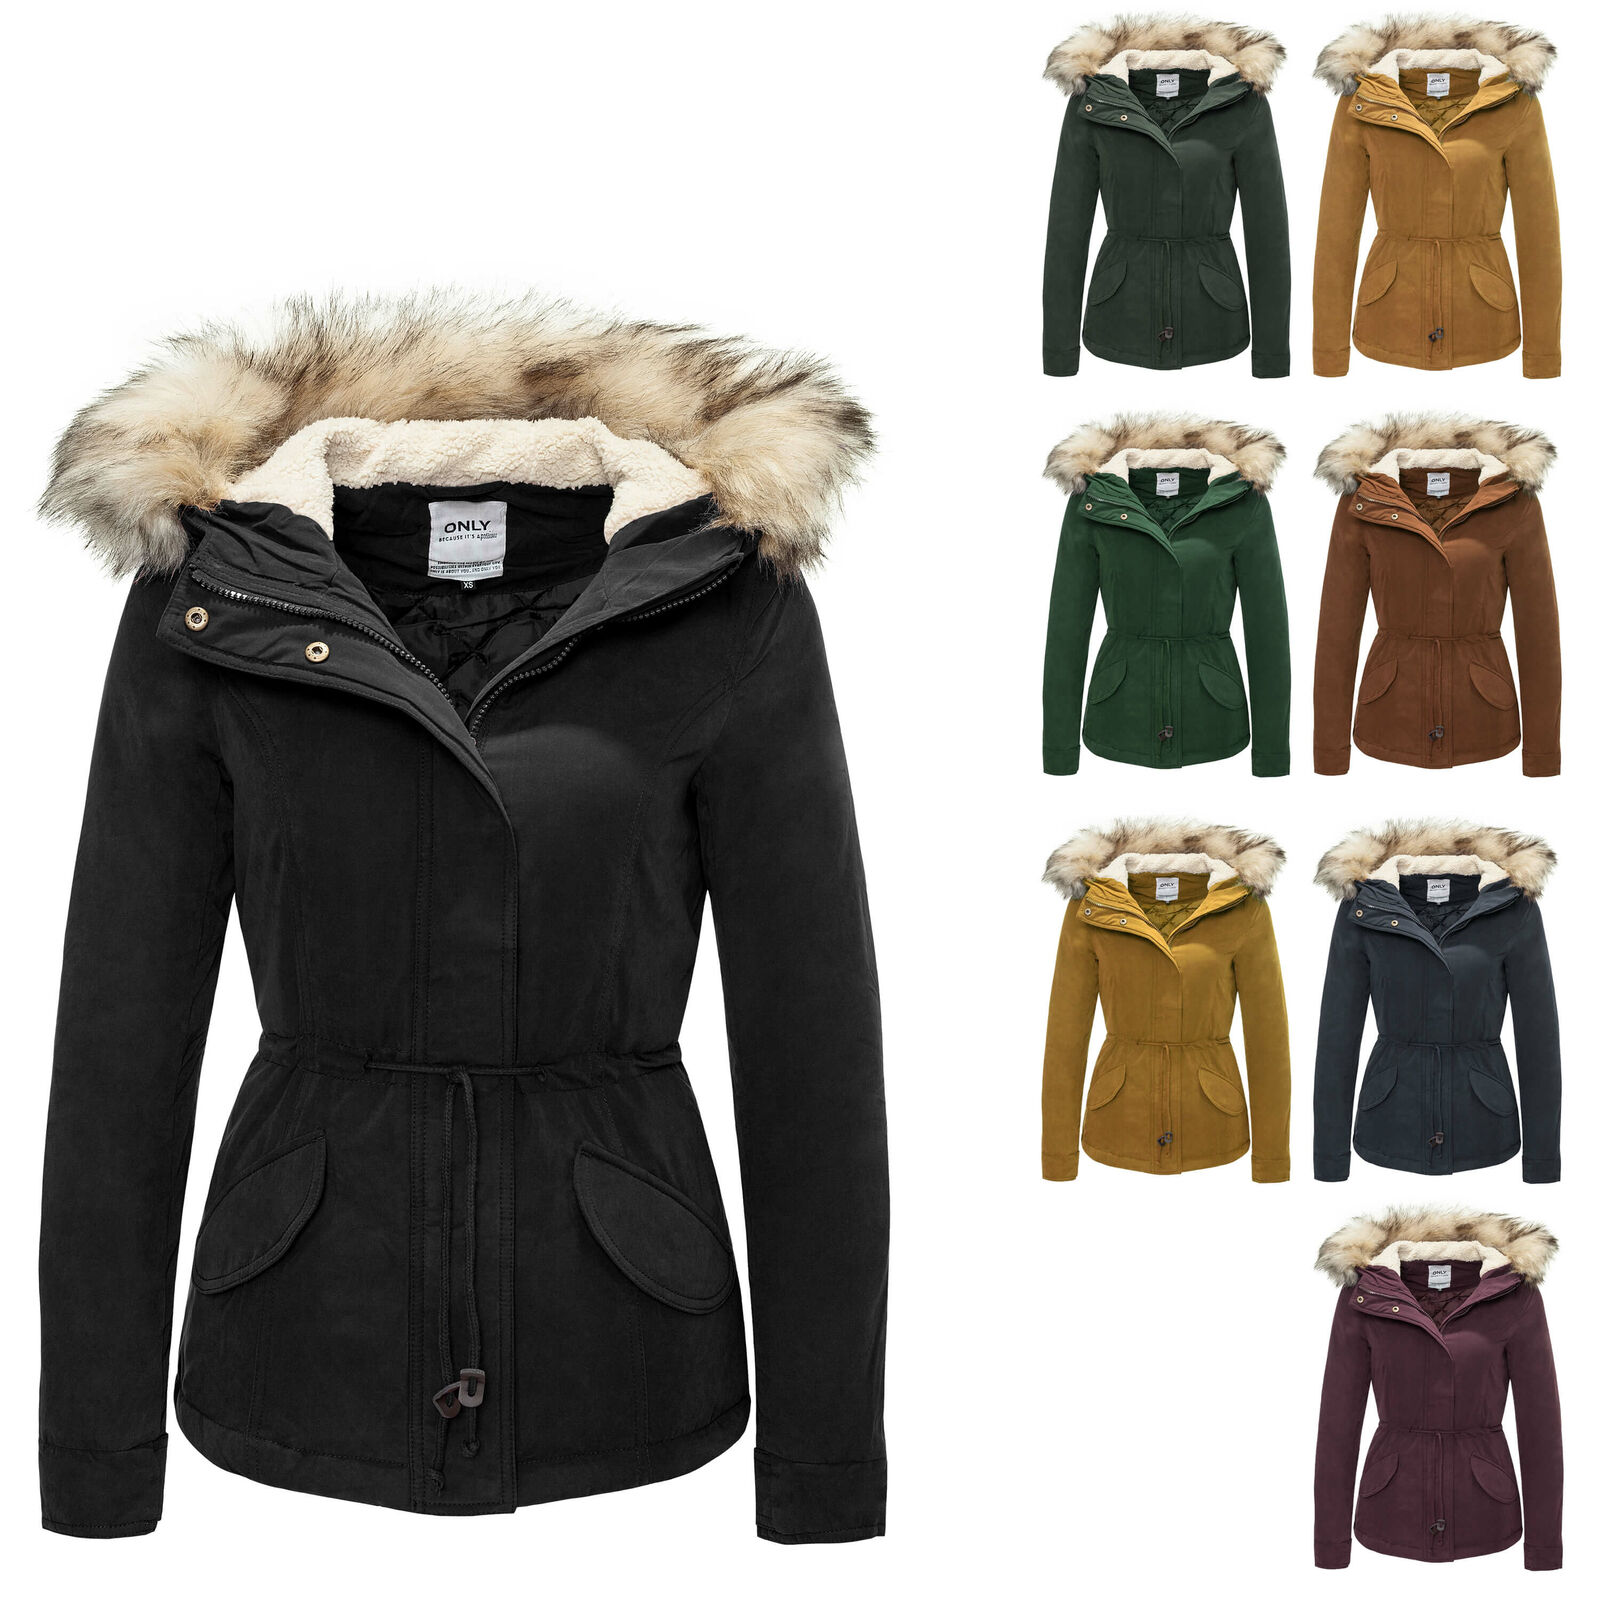 only damen parka kurzmantel winterjacke blouson mantel kapuzenjacke neu eur 37 99 picclick de. Black Bedroom Furniture Sets. Home Design Ideas